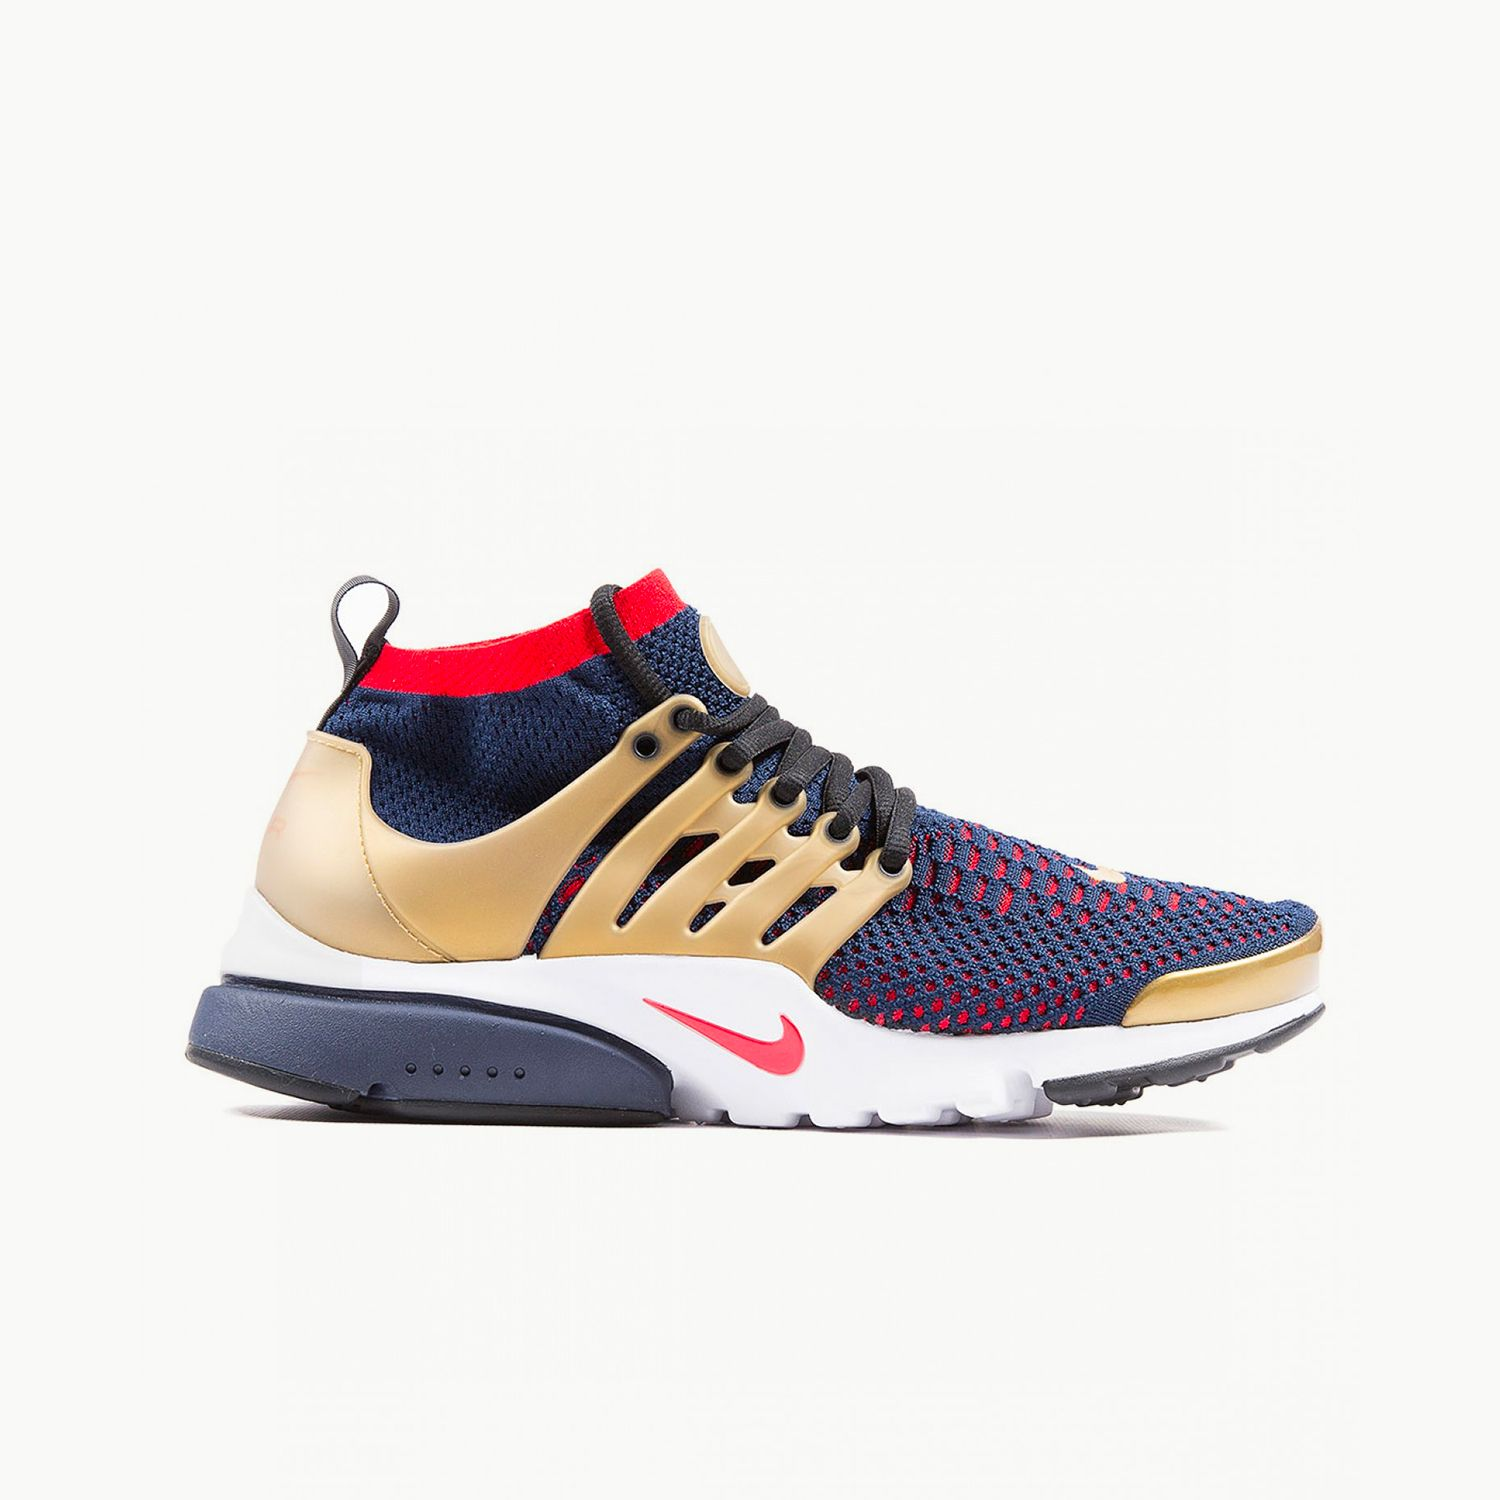 quality design 3f1e6 d7569 ... NIKE SPORTSWEAR AIR PRESTO ULTRA FLYKNIT Available at HYPE DC ...